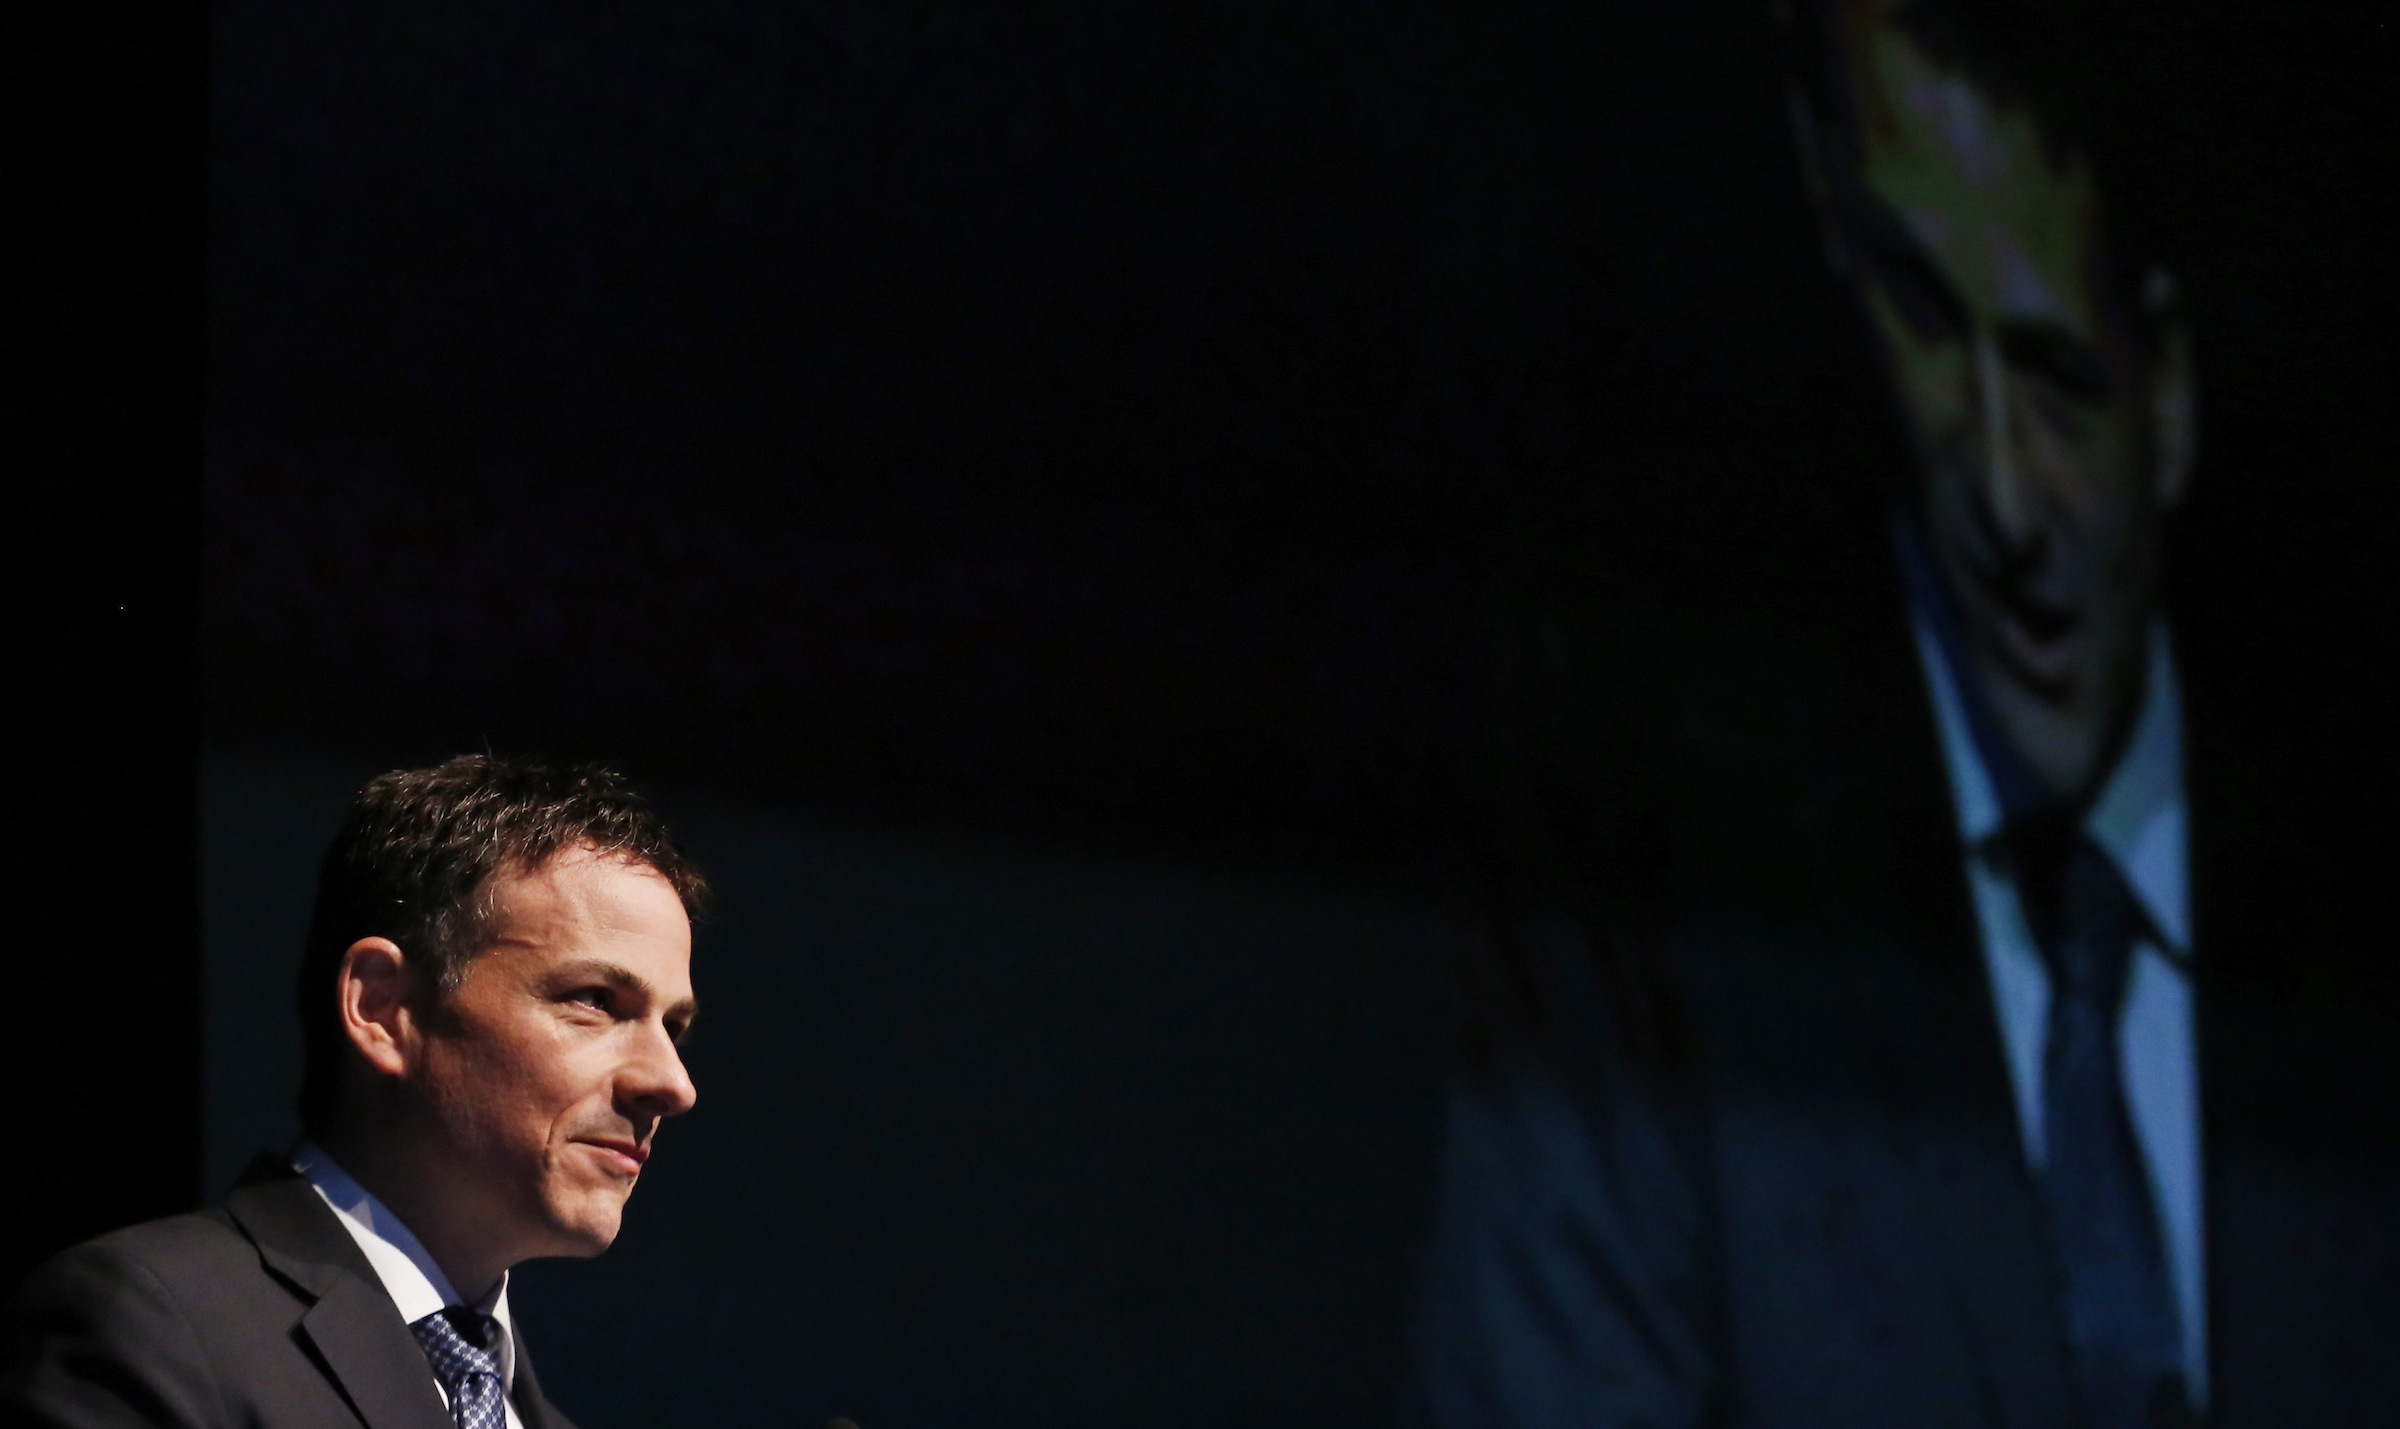 David Einhorn speaks at the Sohn Investment Conference in New York, May 8, 2013. Einhorn, president of $8.8 billion hedge fund Greenlight Capital, said Wednesday that Oil States International is a high-quality business relative to competitors. REUTERS/Brendan McDermid (UNITED STATES - Tags: BUSINESS) - RTXZFN7